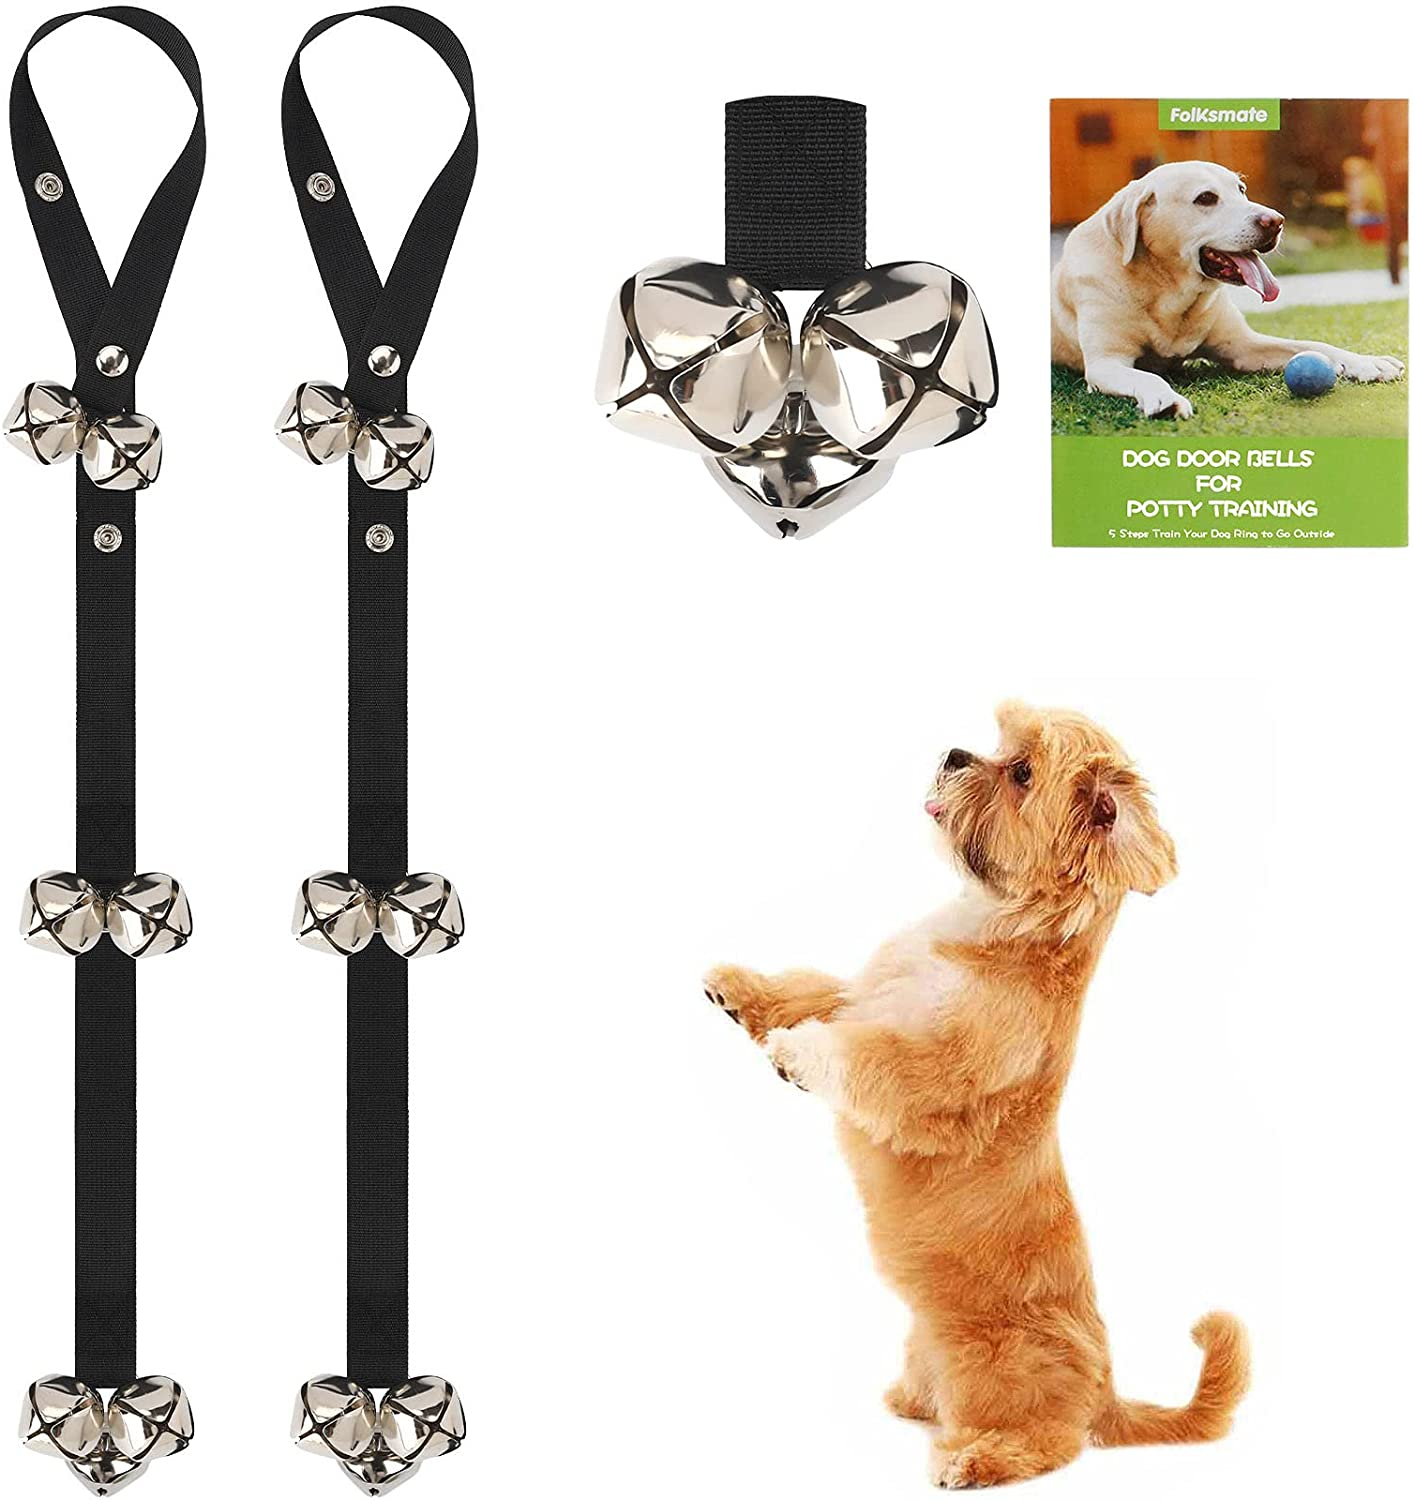 FOLKSMATE Dog Doorbells for Potty Training, 3 Snaps Adjustable Puppy Dog Door Bells with 7 Extra Loud Bells for Dogs Training, Housebreaking, Door Knob, Ring to Go Outside Puppy Pet Supplies